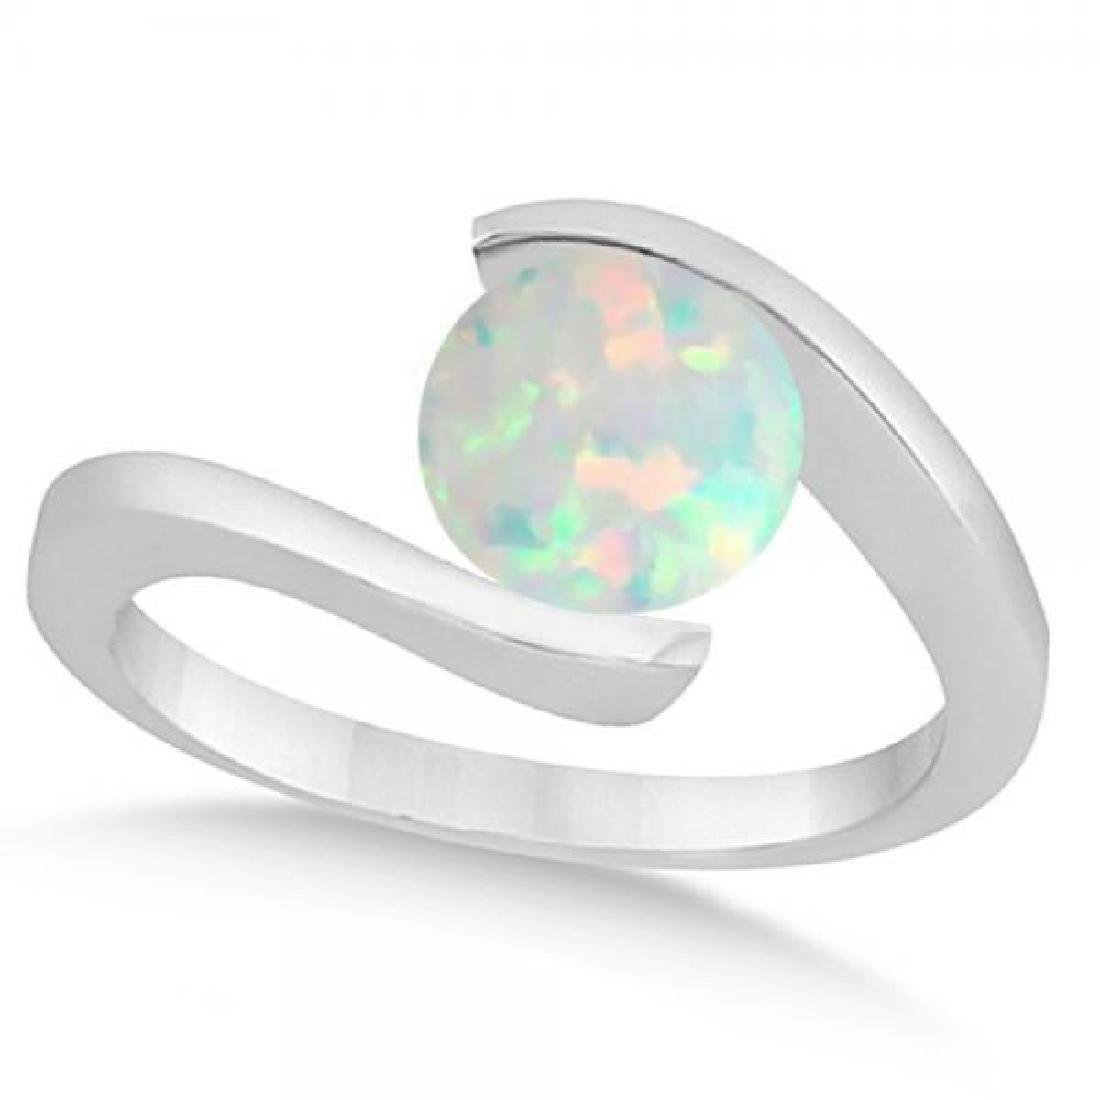 Tension Set Solitaire Opal Engagement Ring 14k White Go